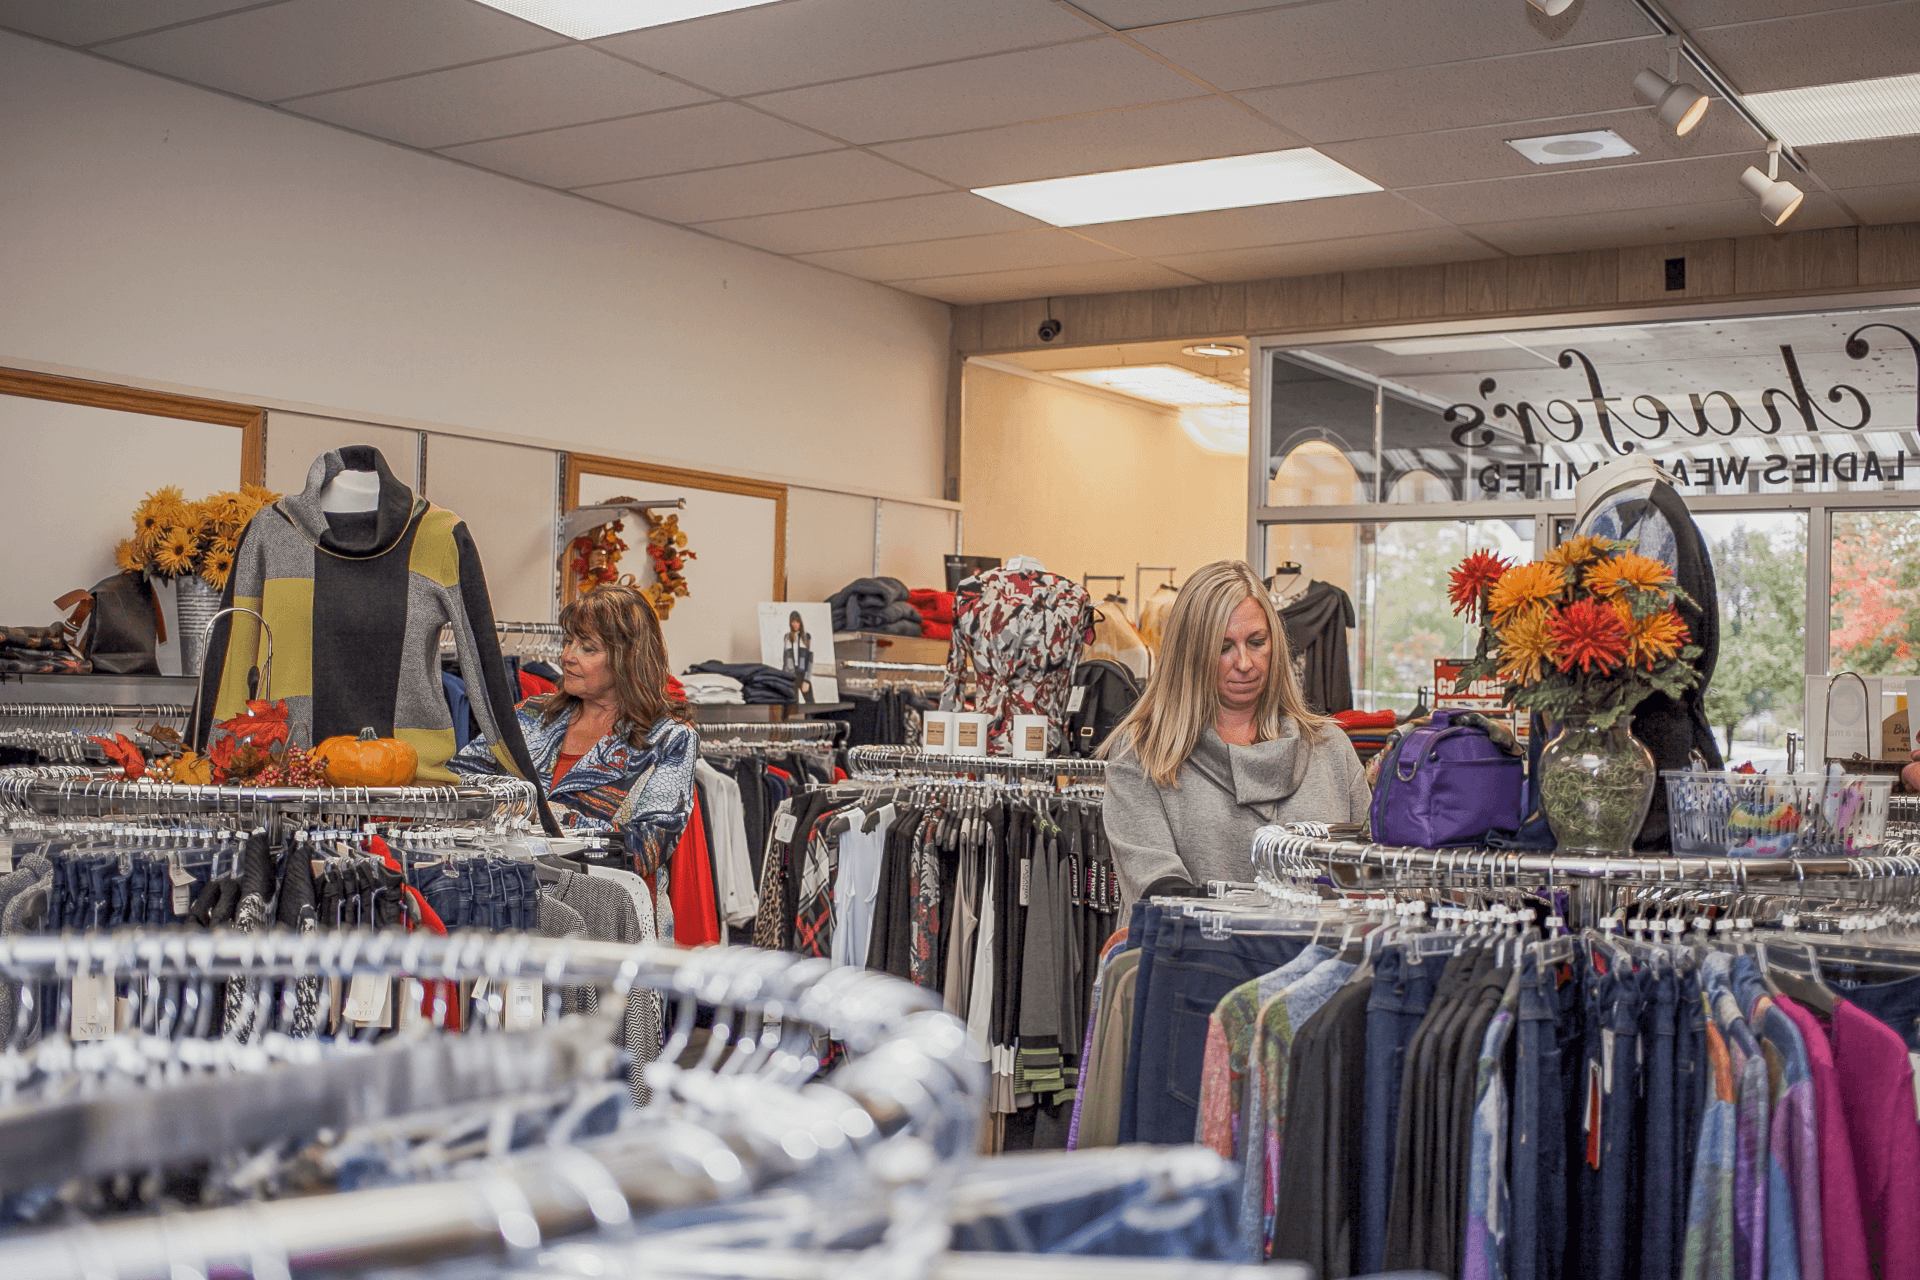 owner and employee sorting clothes